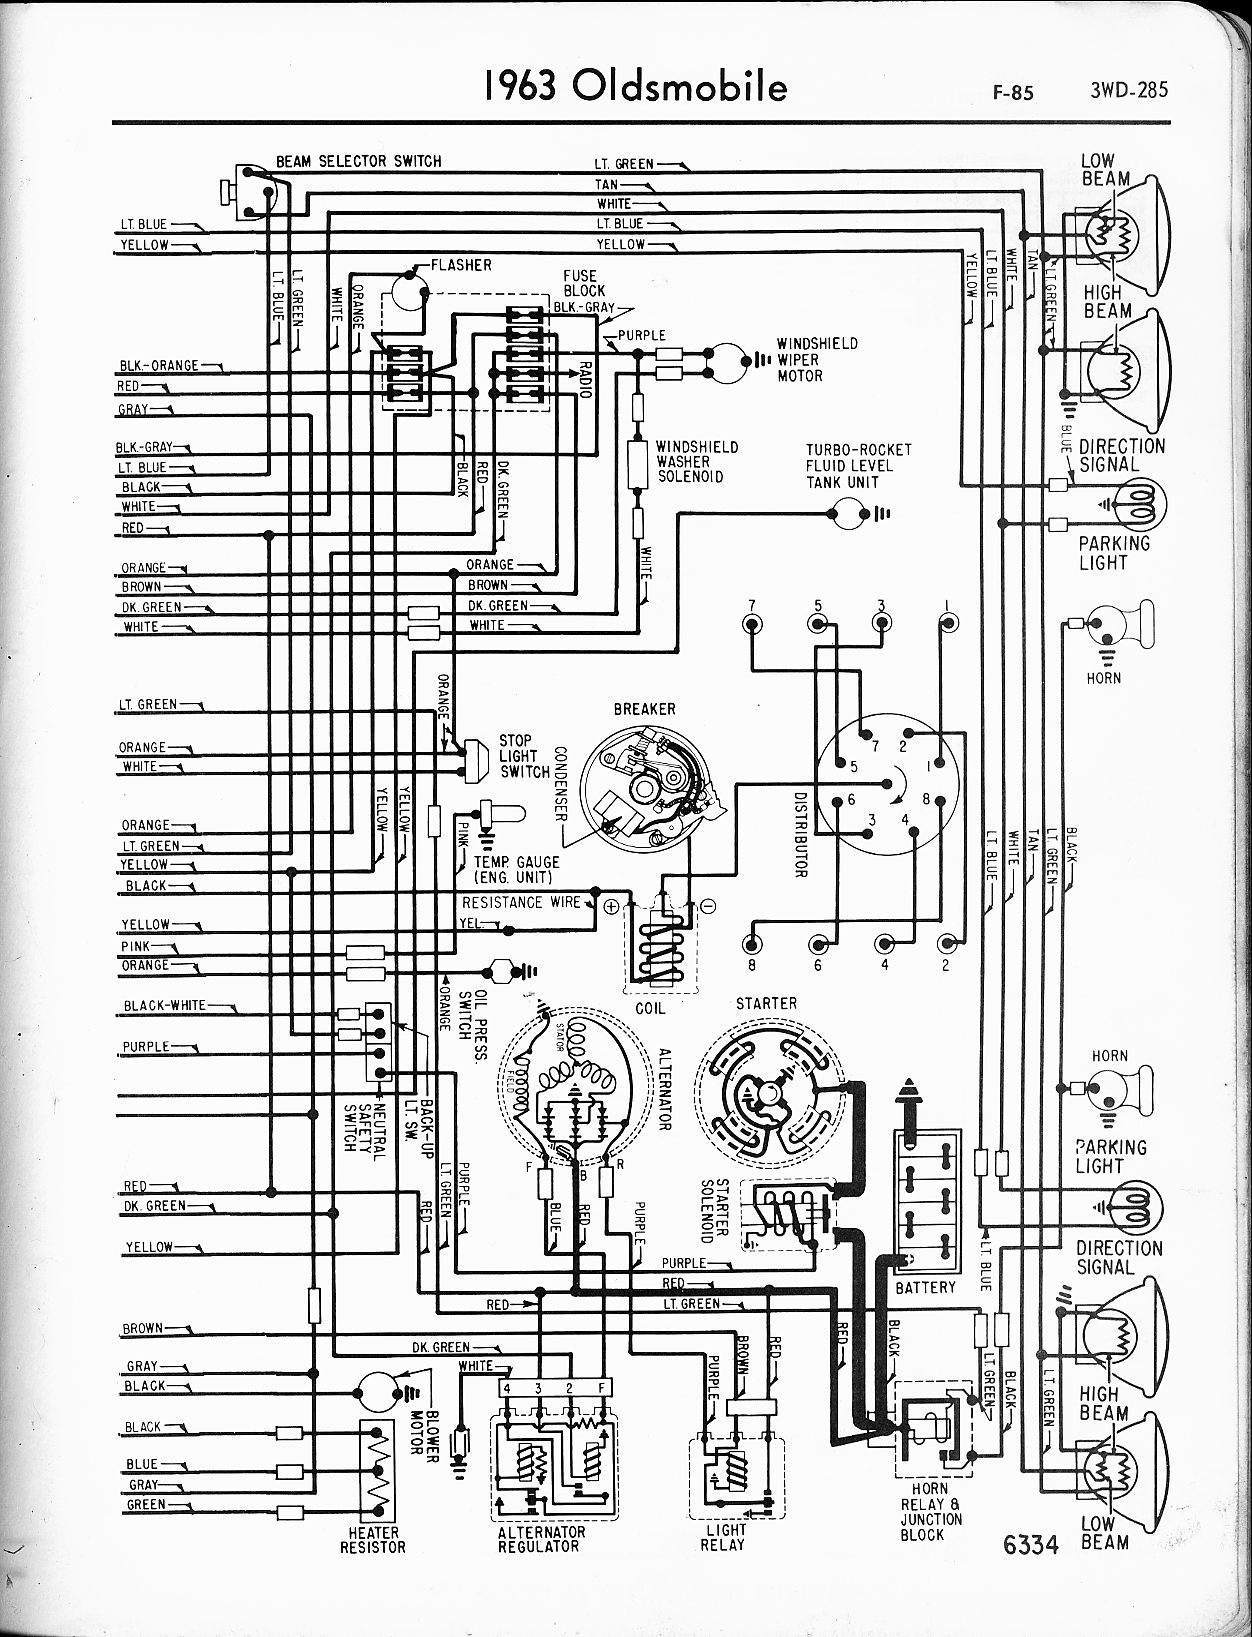 1998 Aurora Wiring Diagrams 1999 Oldsmobile Fuse Box Diagram Library Rh 7 Global Colors De 90 Fc